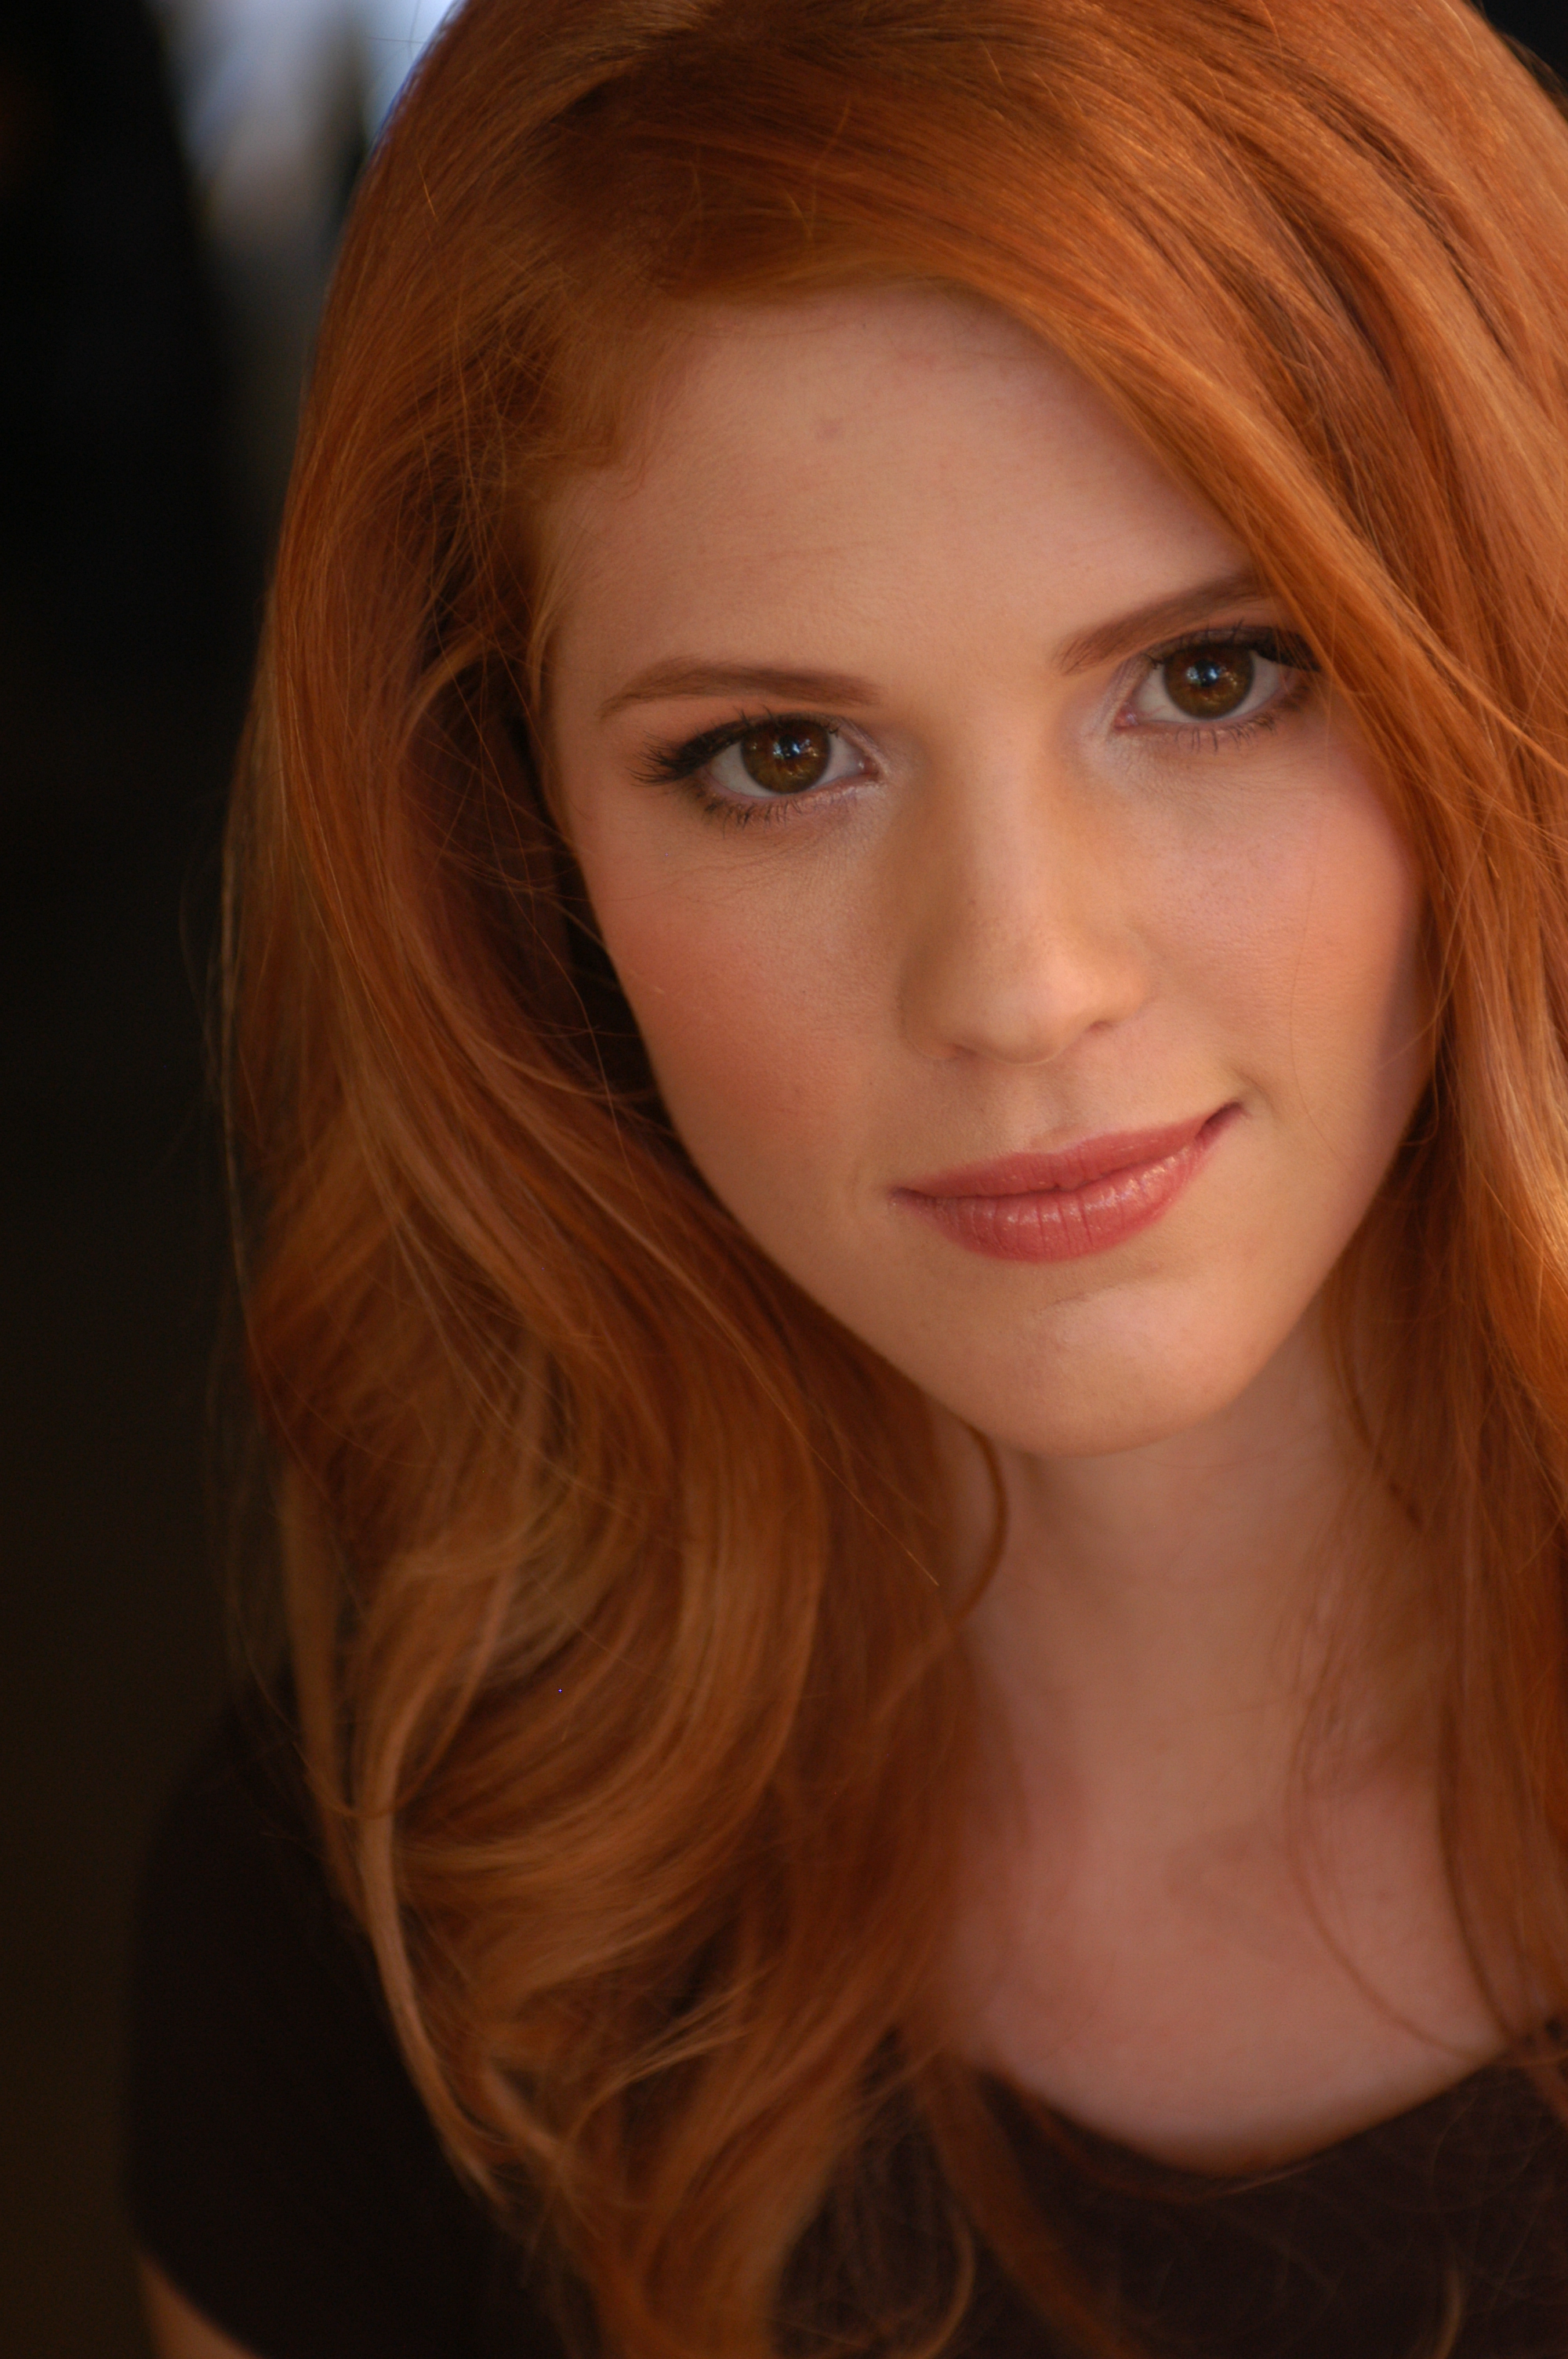 Beautiful Redhead Gals: College Of Fine Arts And Communications